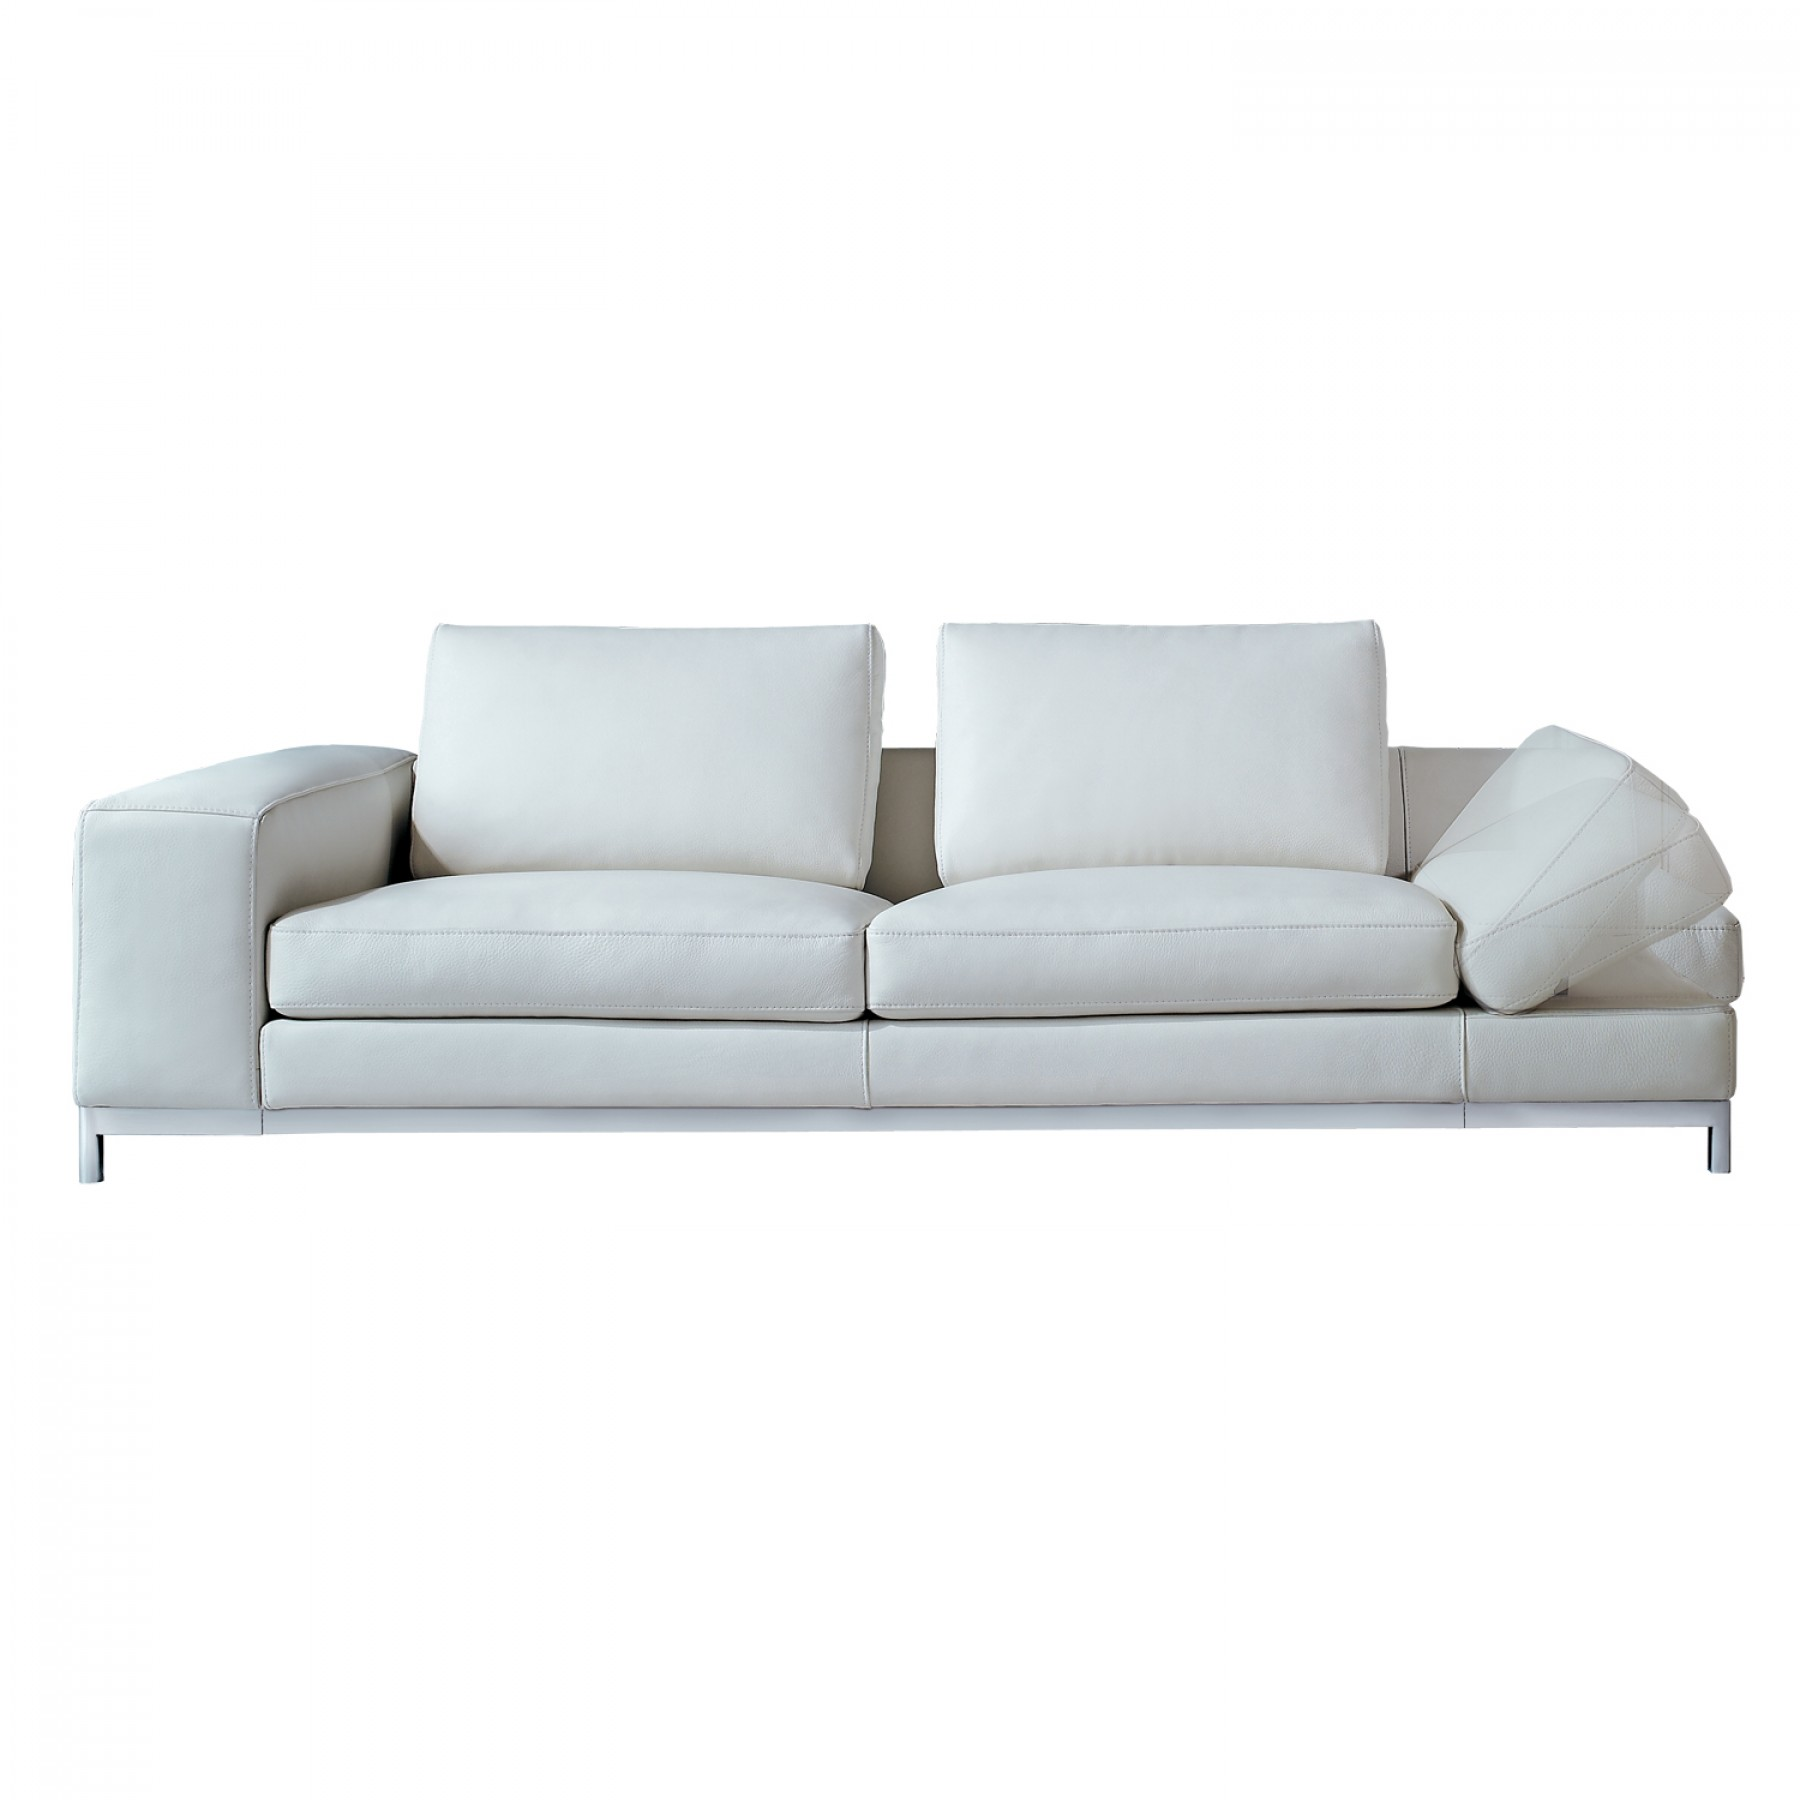 4 Seater Sofa Australia Dese 4 Seater With Adjustable Arm Beyond Furniture